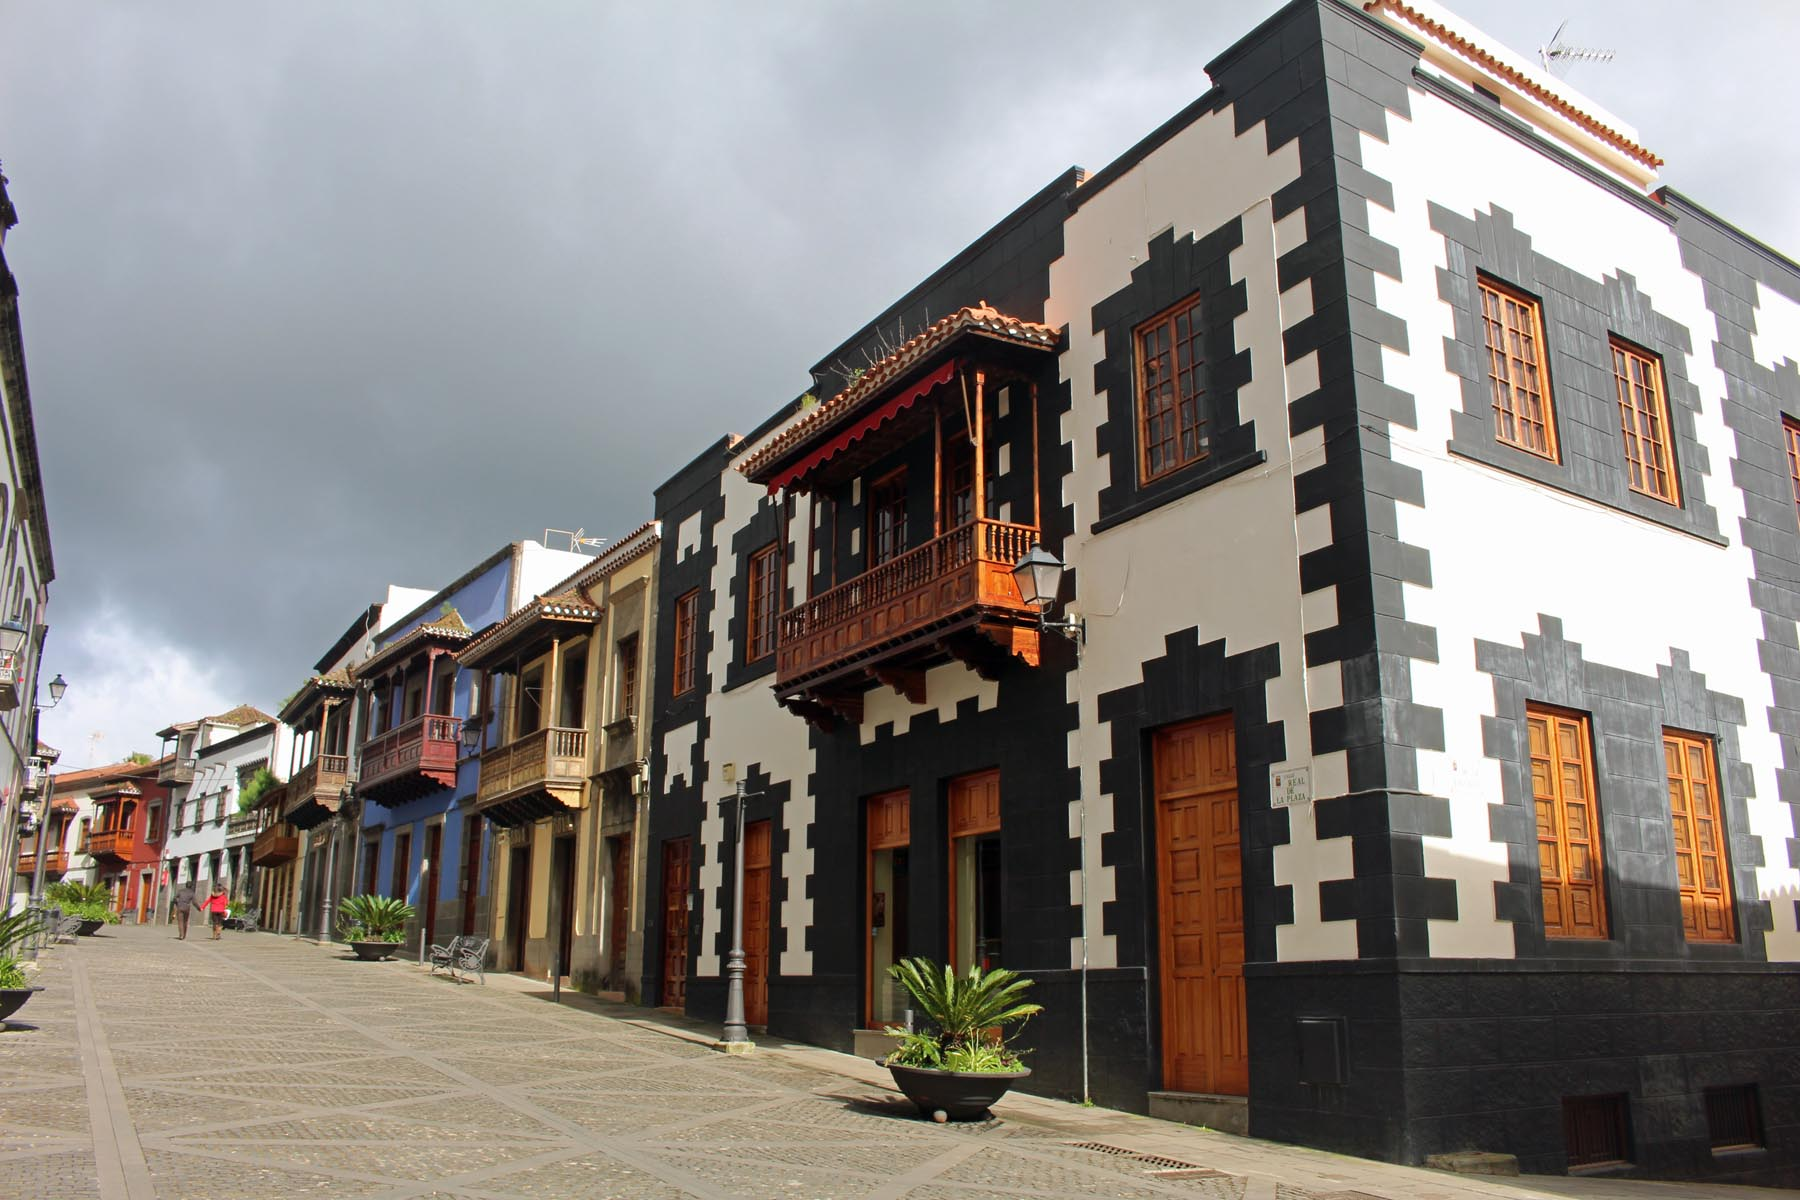 Grande Canarie, Teror, calle Real, maisons